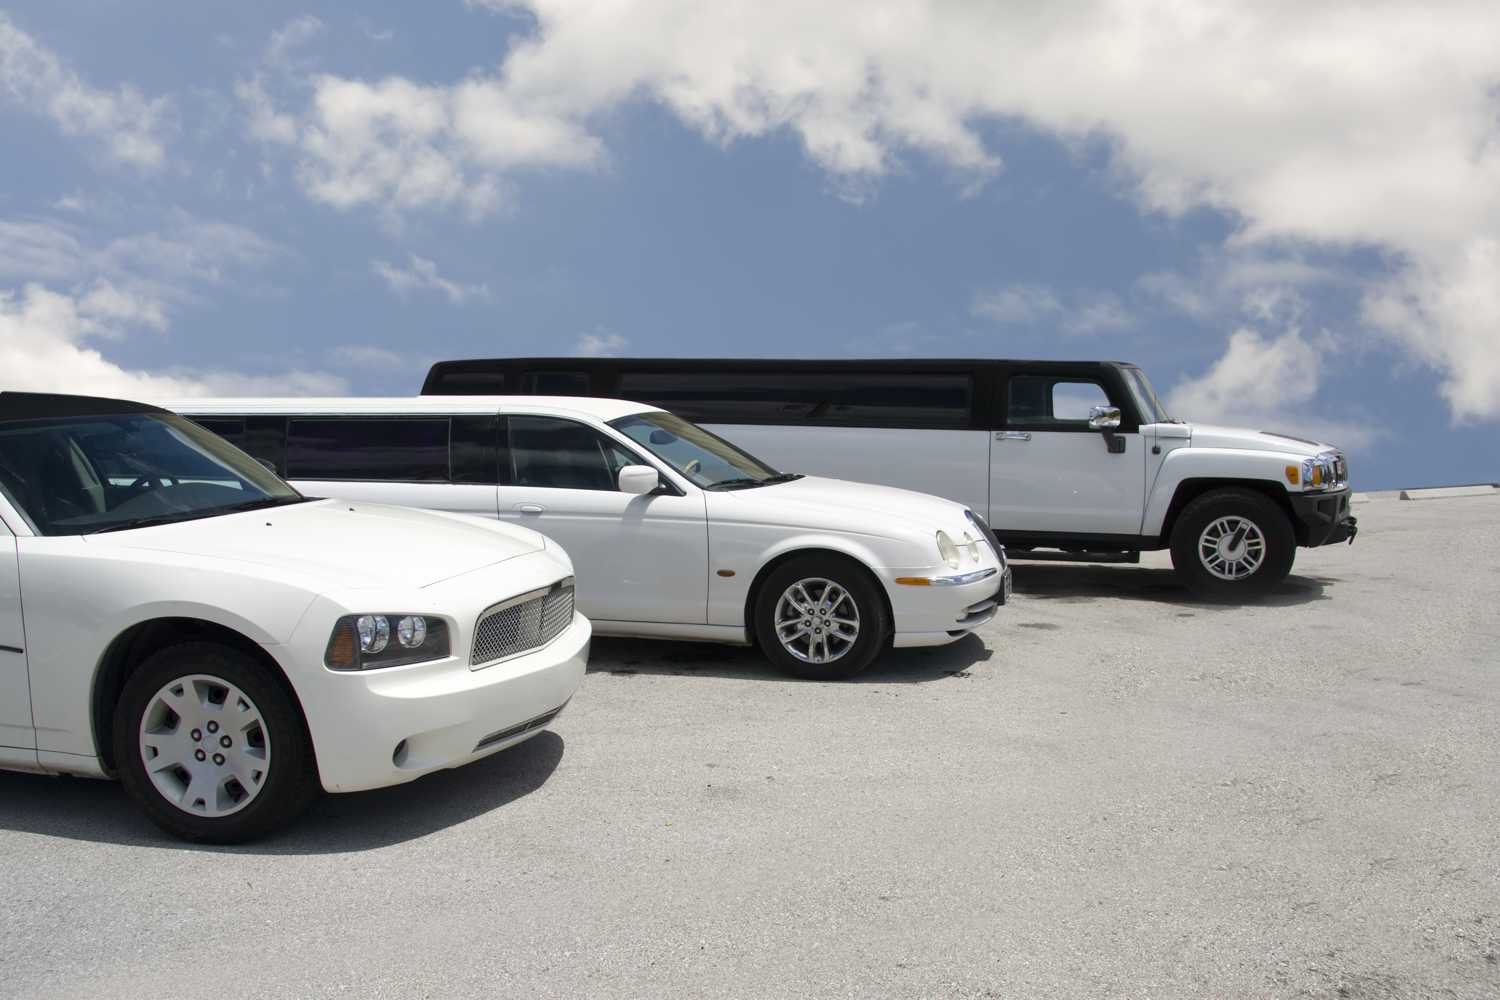 fleet of limos financed through Coachwest